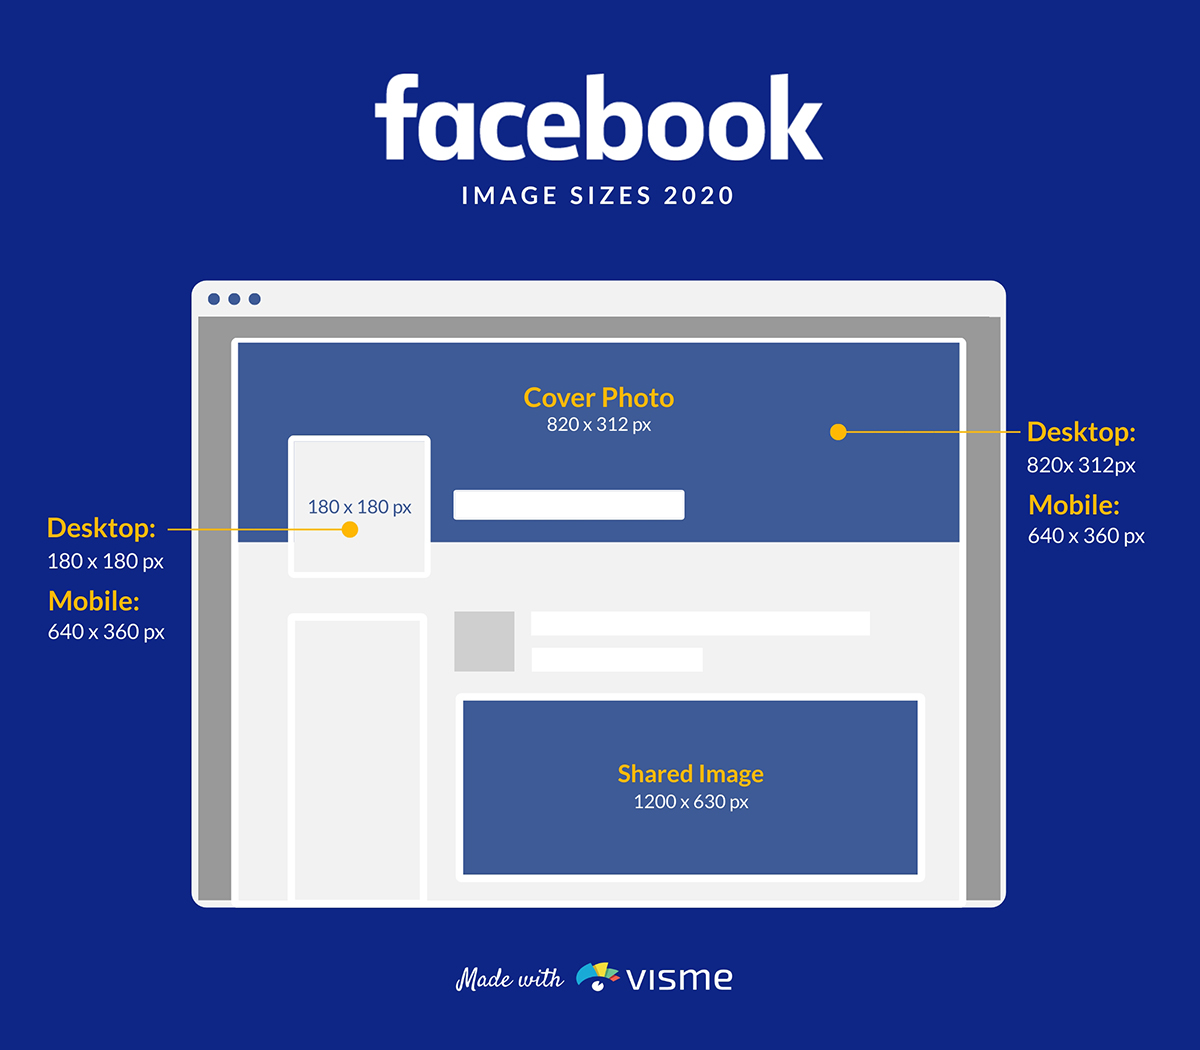 social media image sizes - facebook image sizes